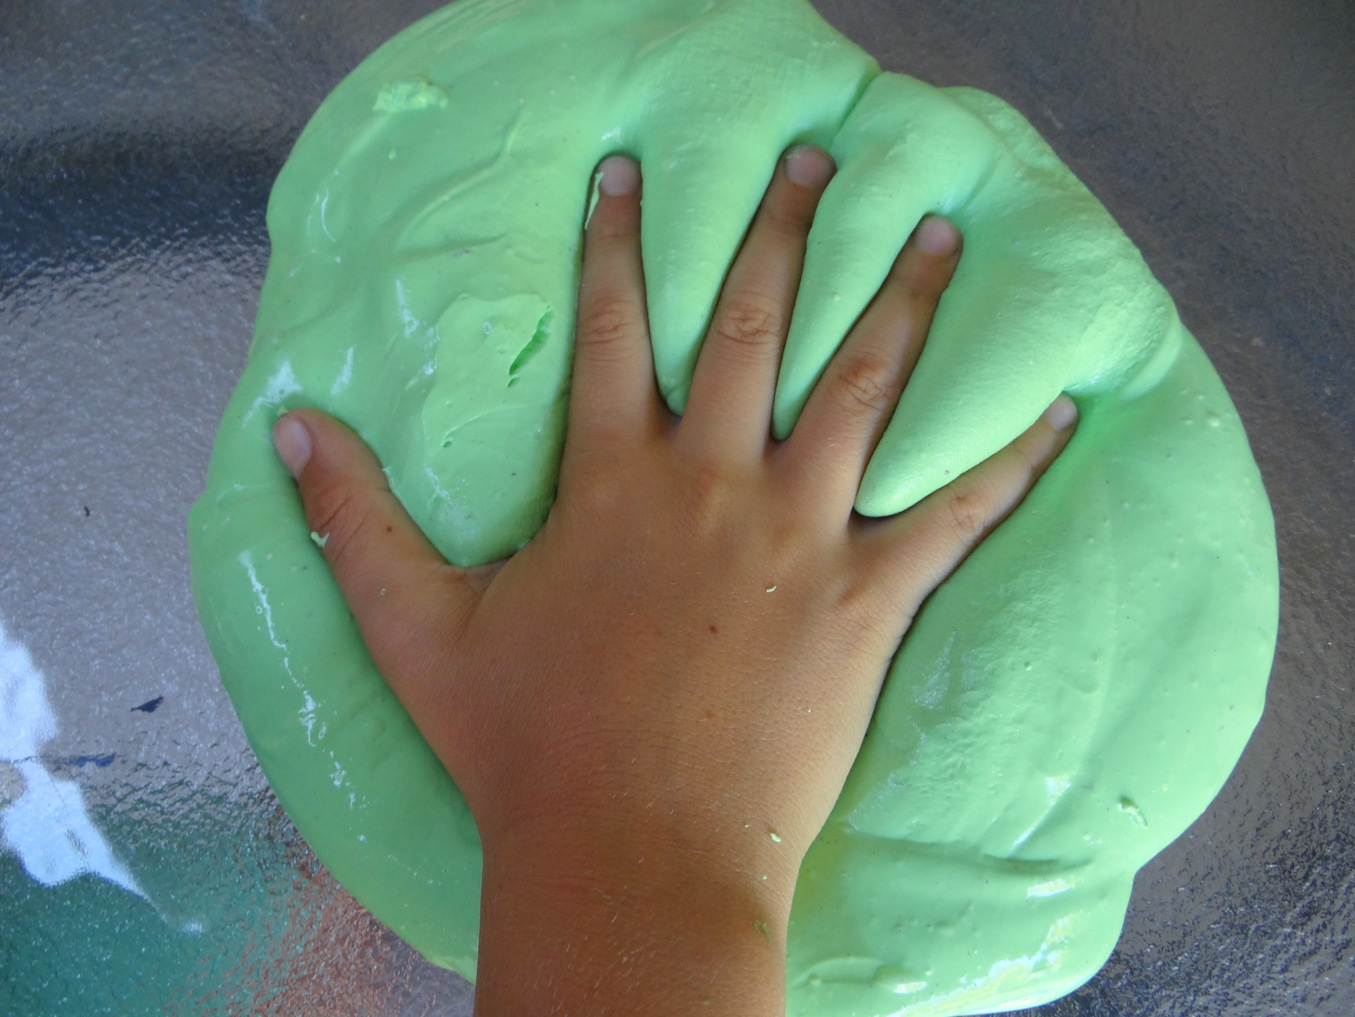 Slime/Silly Putty - a great sensory activity for kids